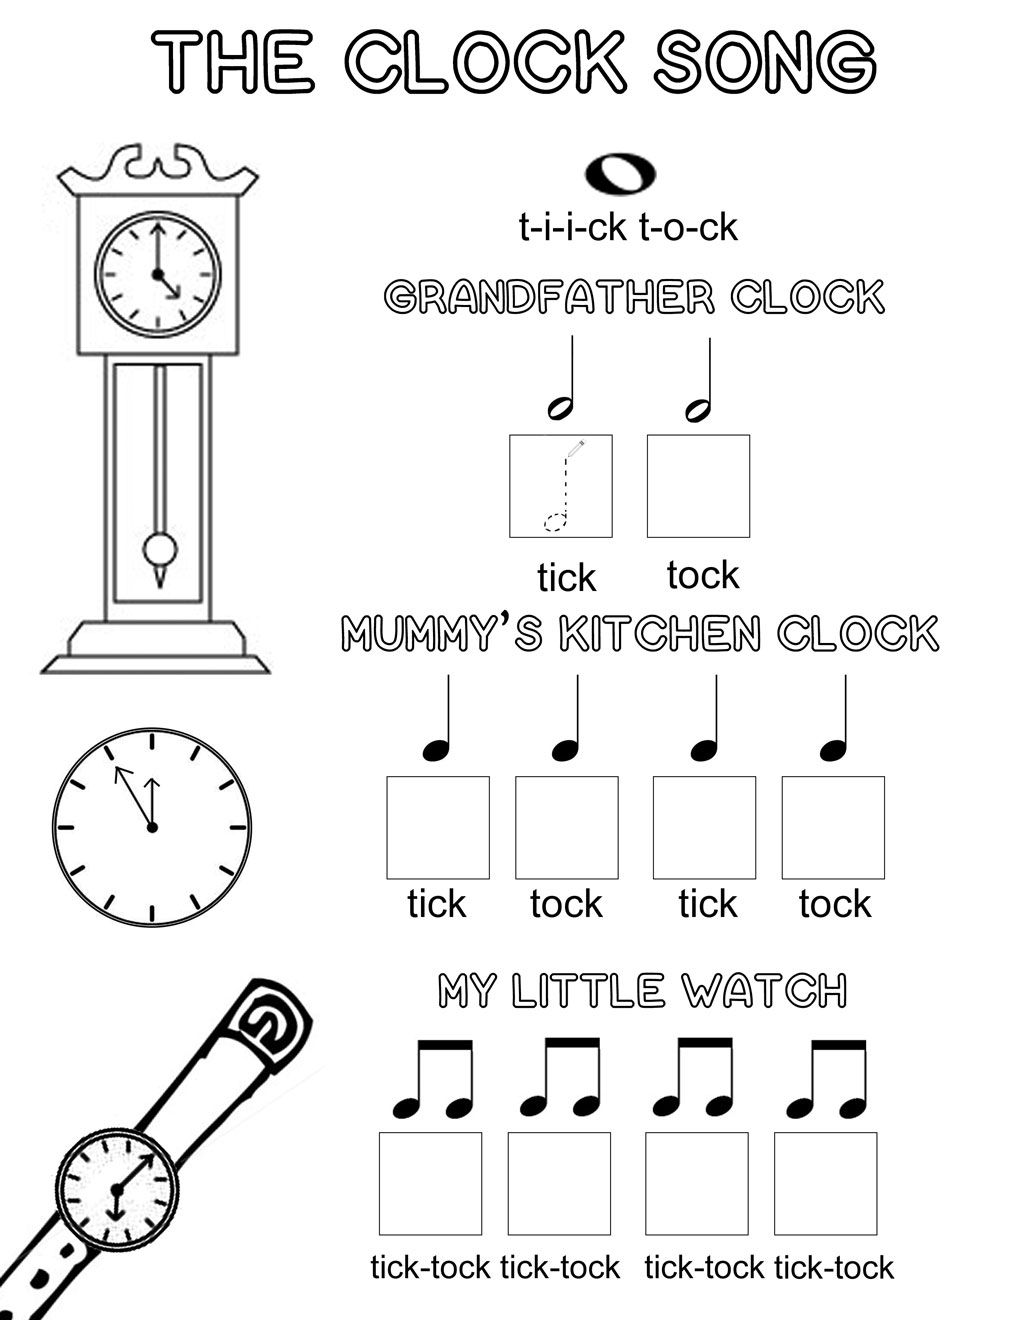 Worksheets Piano Theory Worksheets the clock song an easy way to learn musical note values lets play music free theory worksheet a fun way